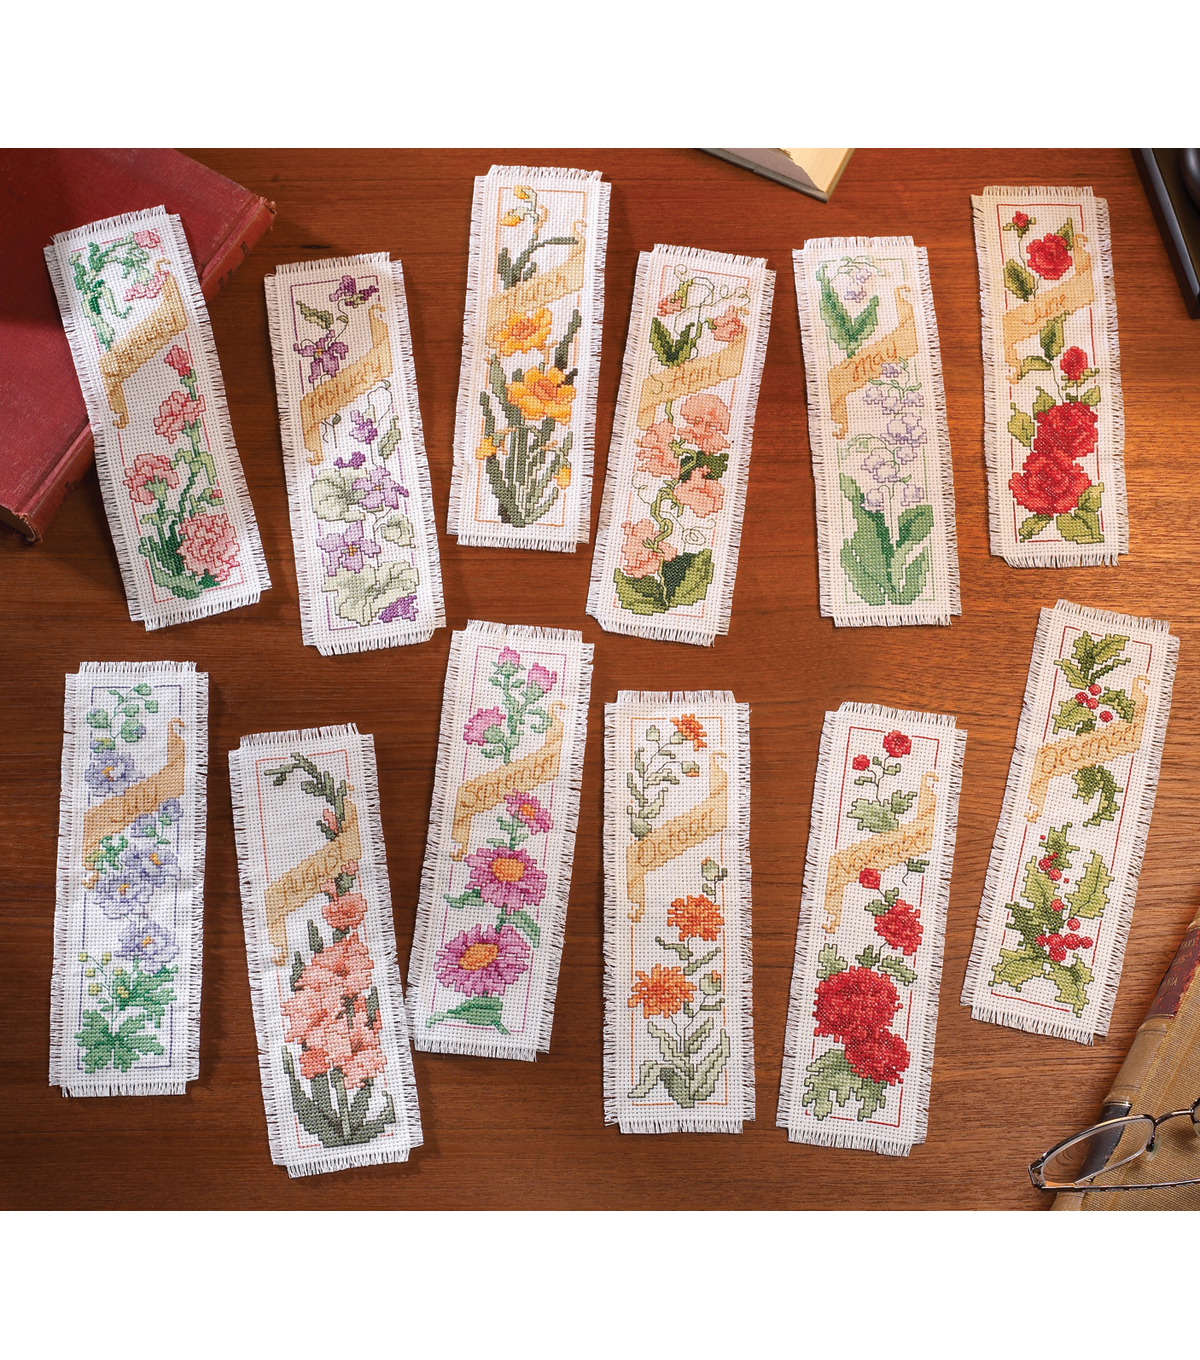 Bucilla Counted Cross Stitch Kit Flowers Of The Month Bookmarks